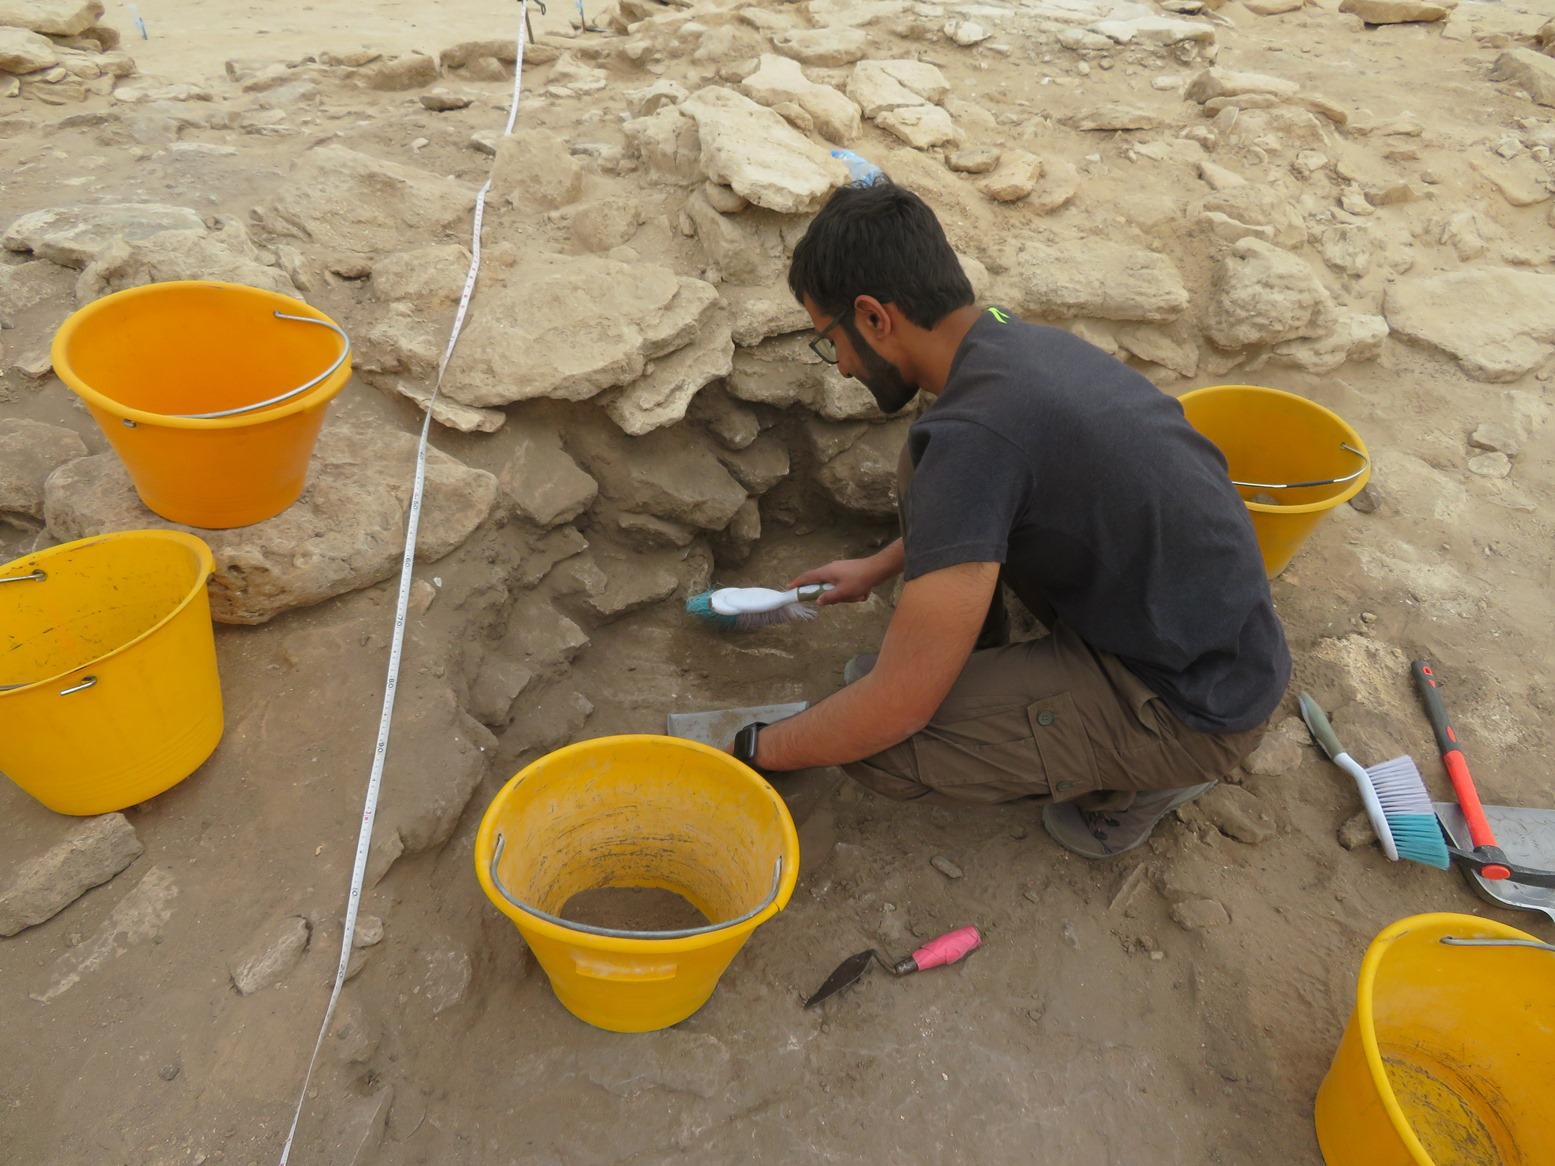 marawah island uncovers abu dhabi history with new findings 4